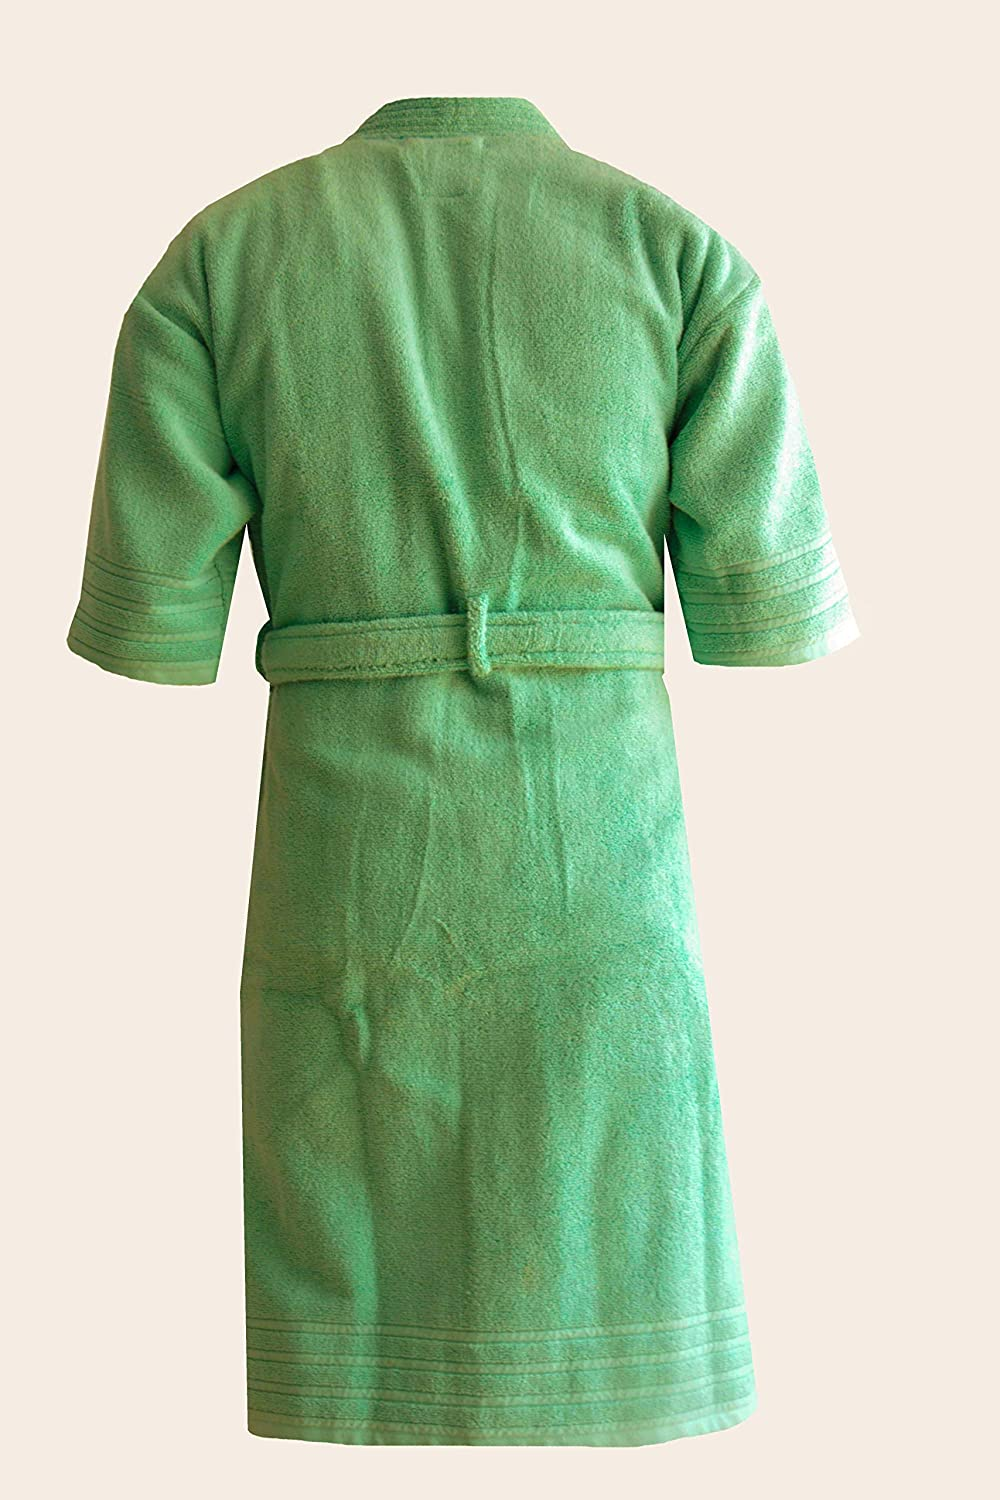 Buy Loomkart Very Fine 100% Cotton Export Quality Bath Robes in Green in Avioni  Zip-Packing- Standard Size Online at Low Prices in India - Amazon.in 41e76523f